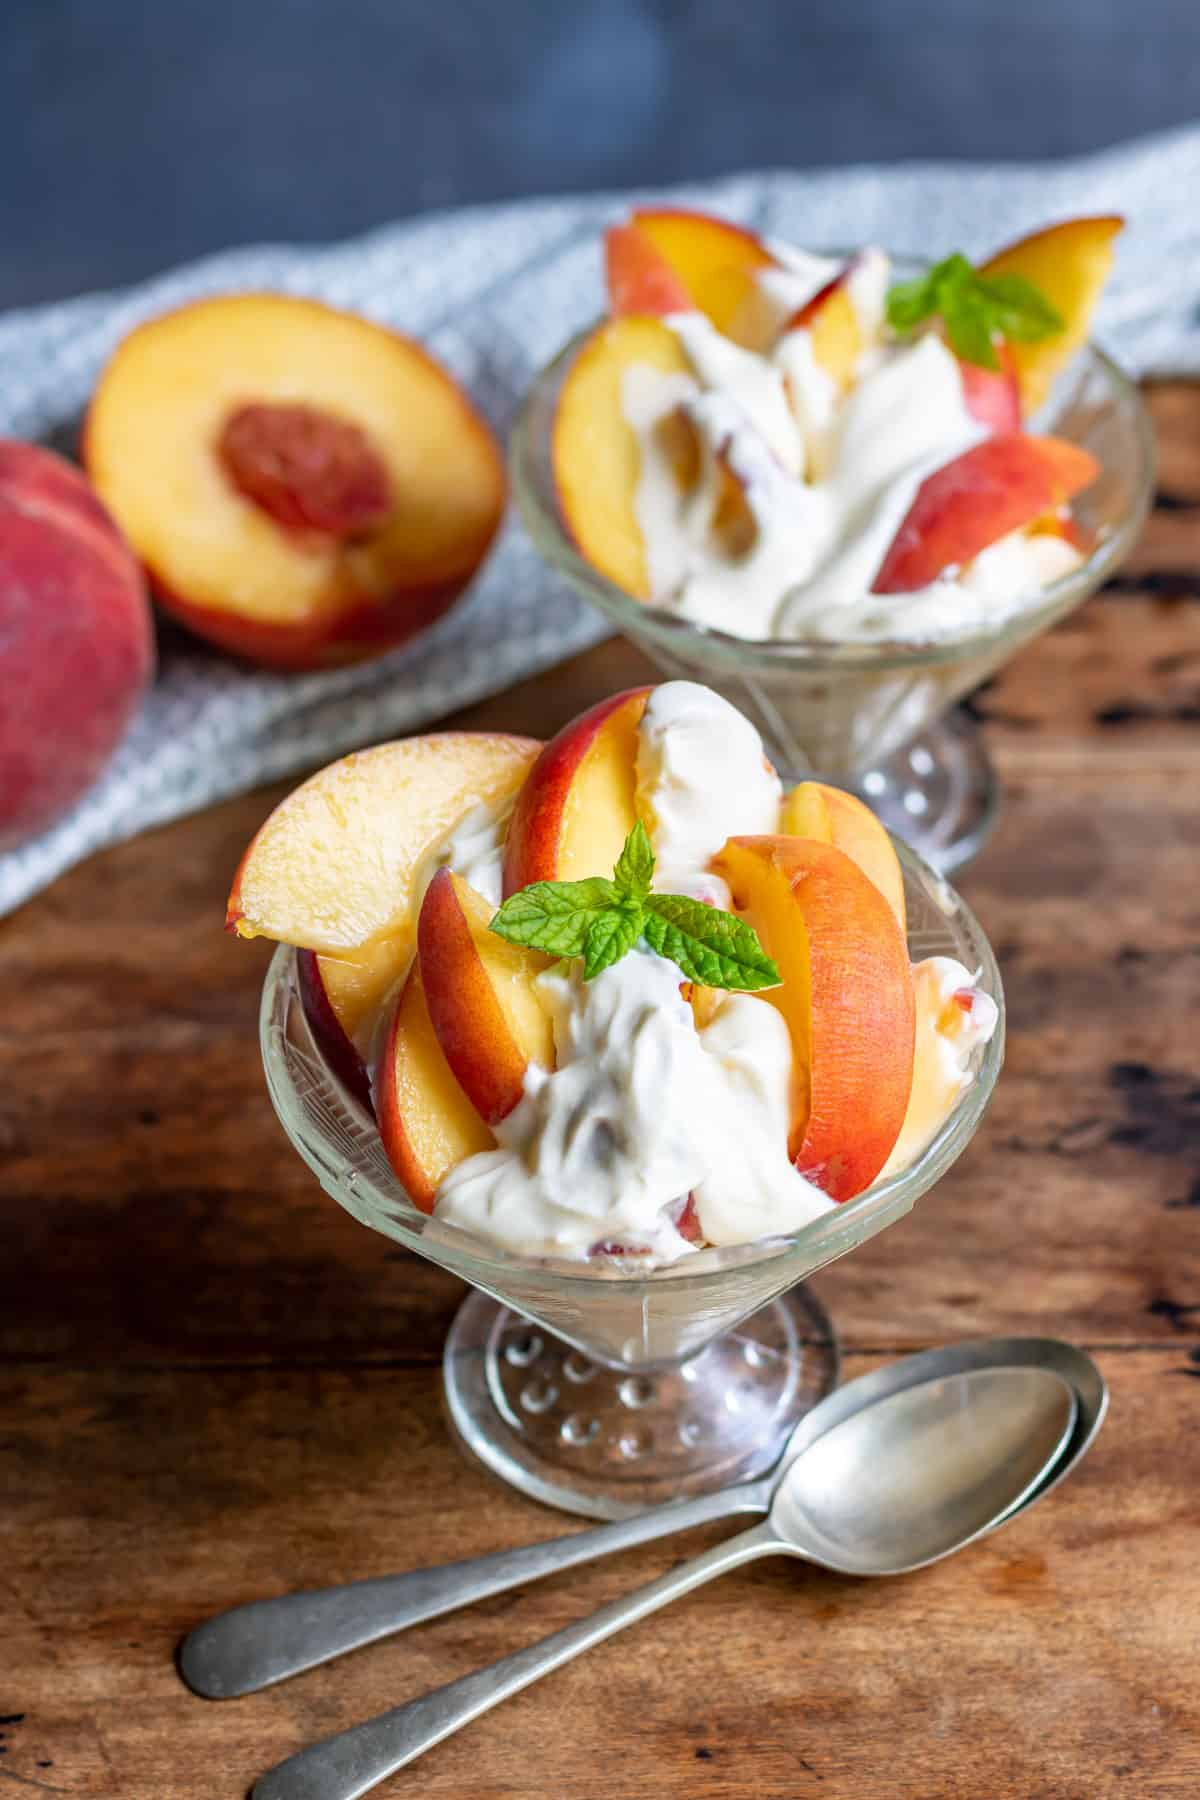 Glass dishes with peaches drizzled in a vanilla cream.